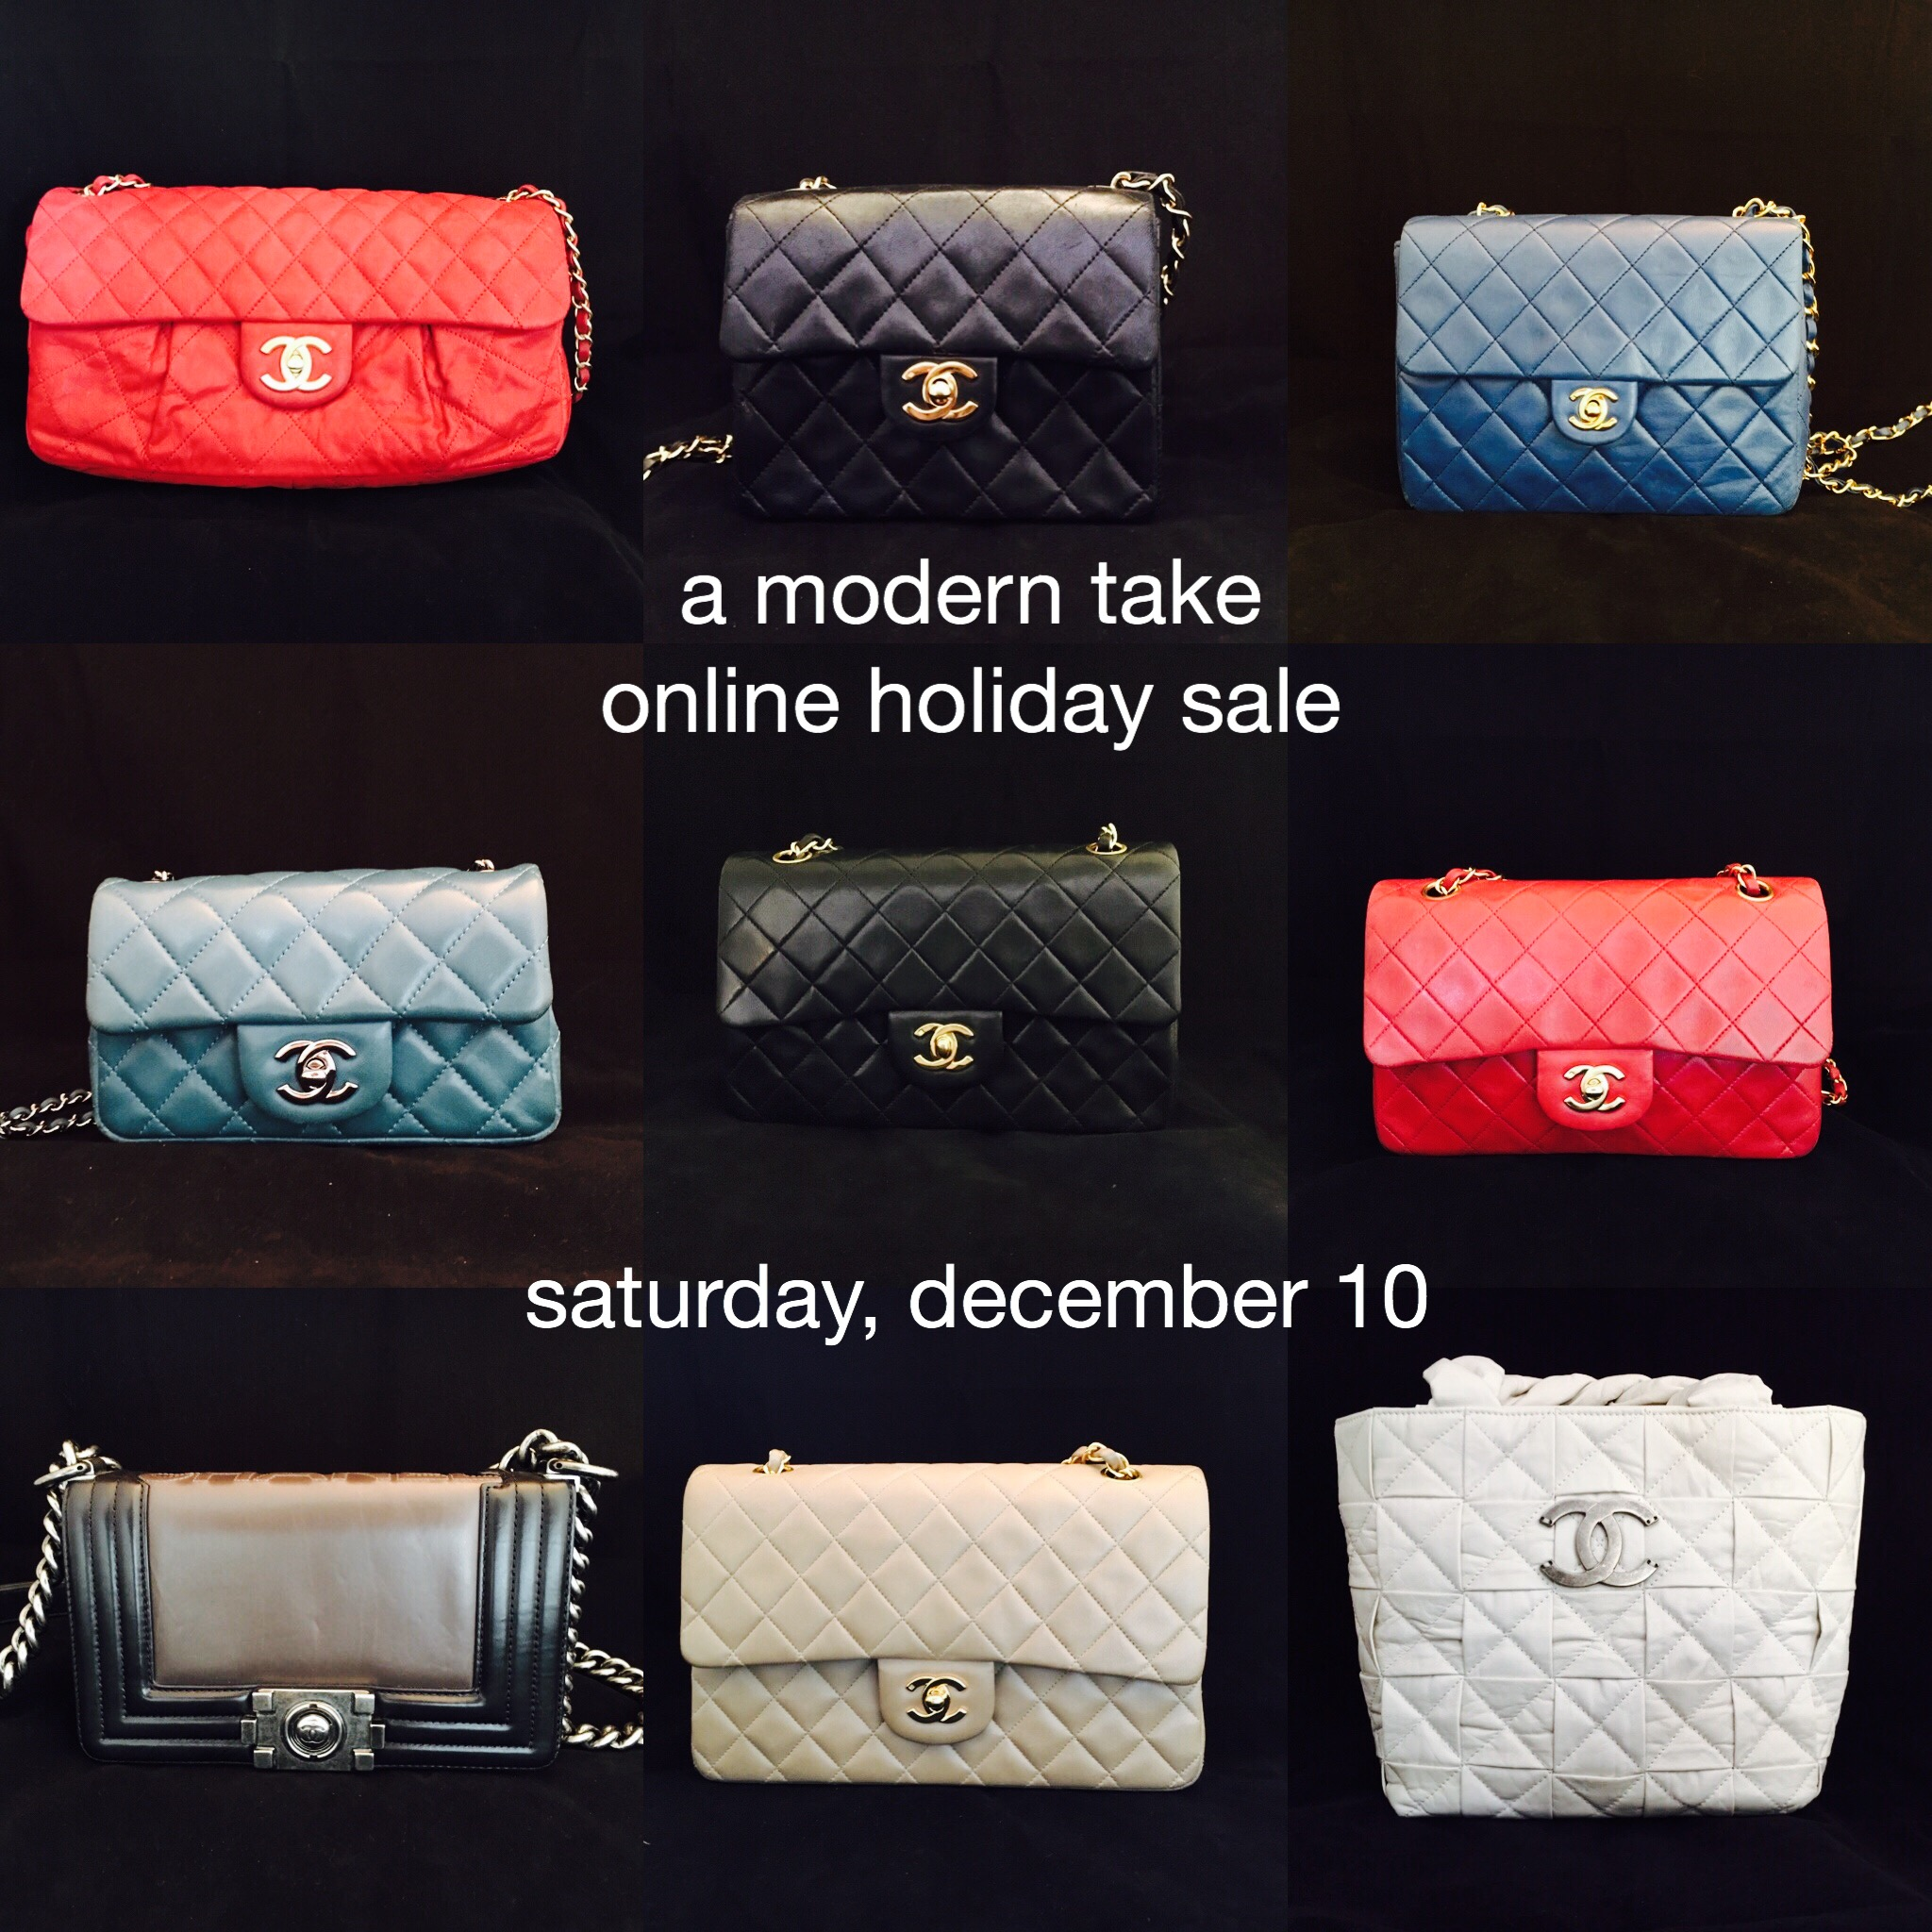 replica bottega veneta handbags wallet calendar decorating